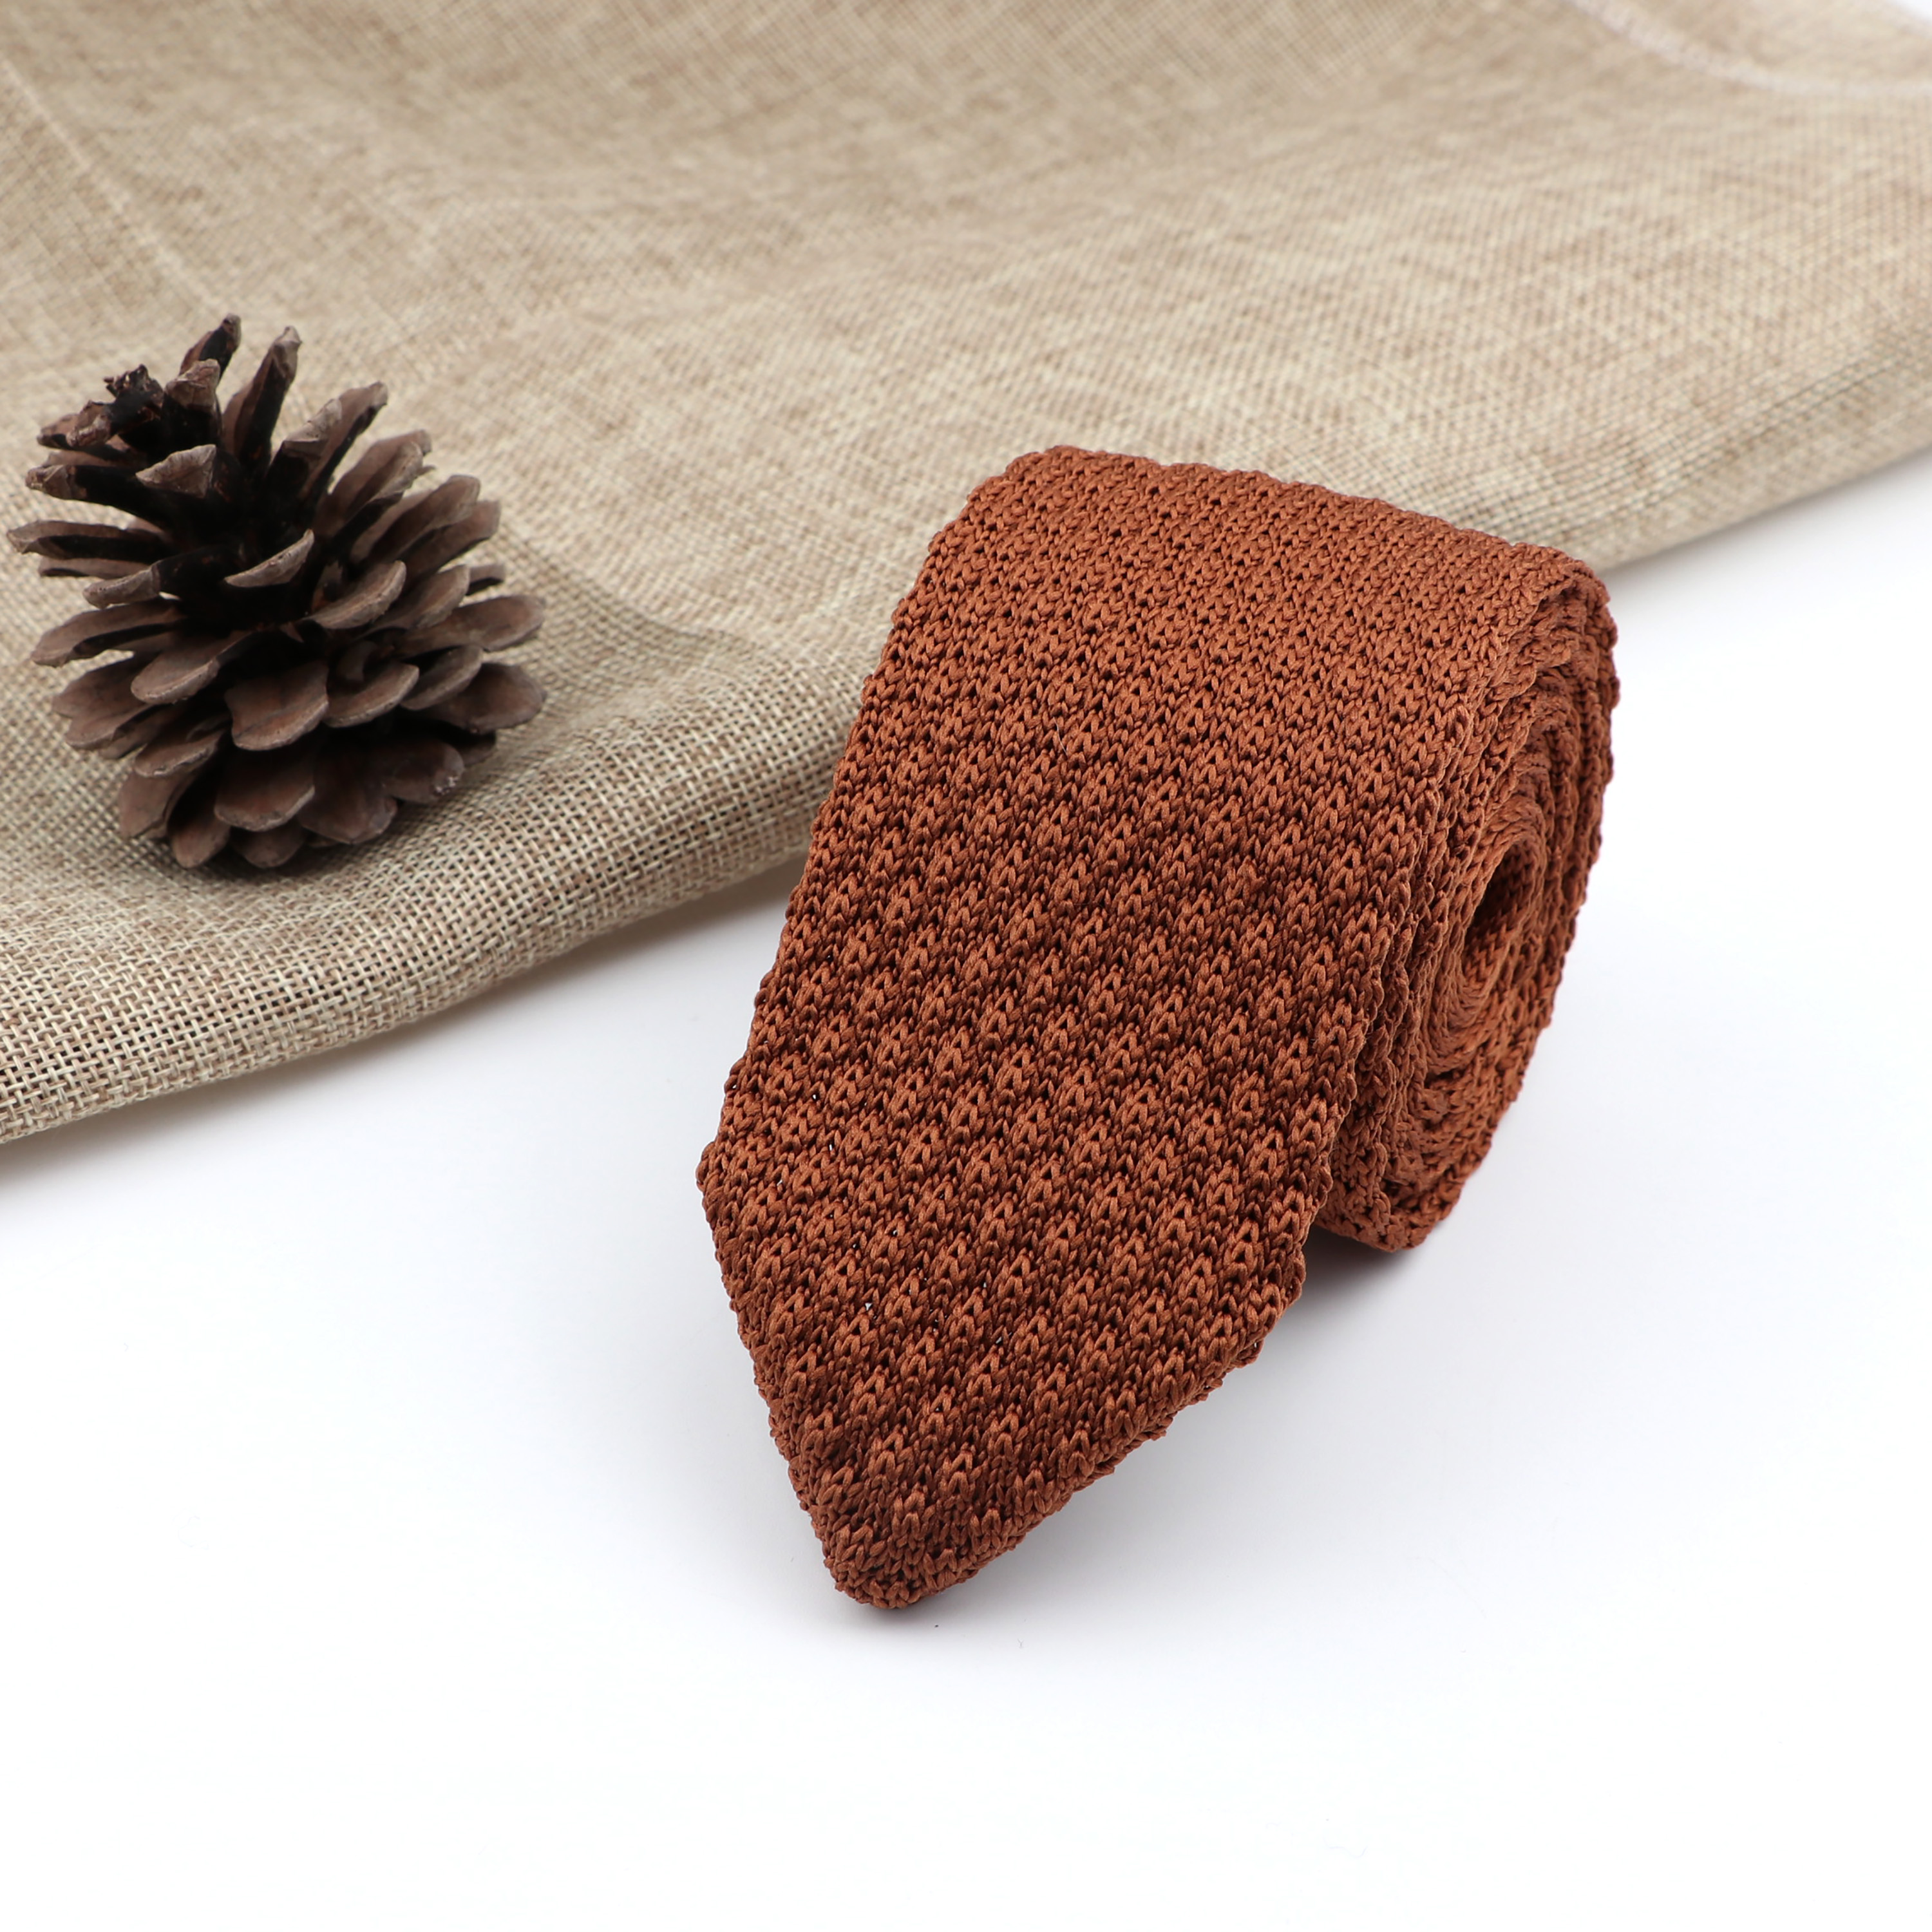 Men's Knitted Knit Solid Colorful Slim Tie New Style Fashion Leisure Classic Necktie Normal Woven Cravate Narrow Neckties